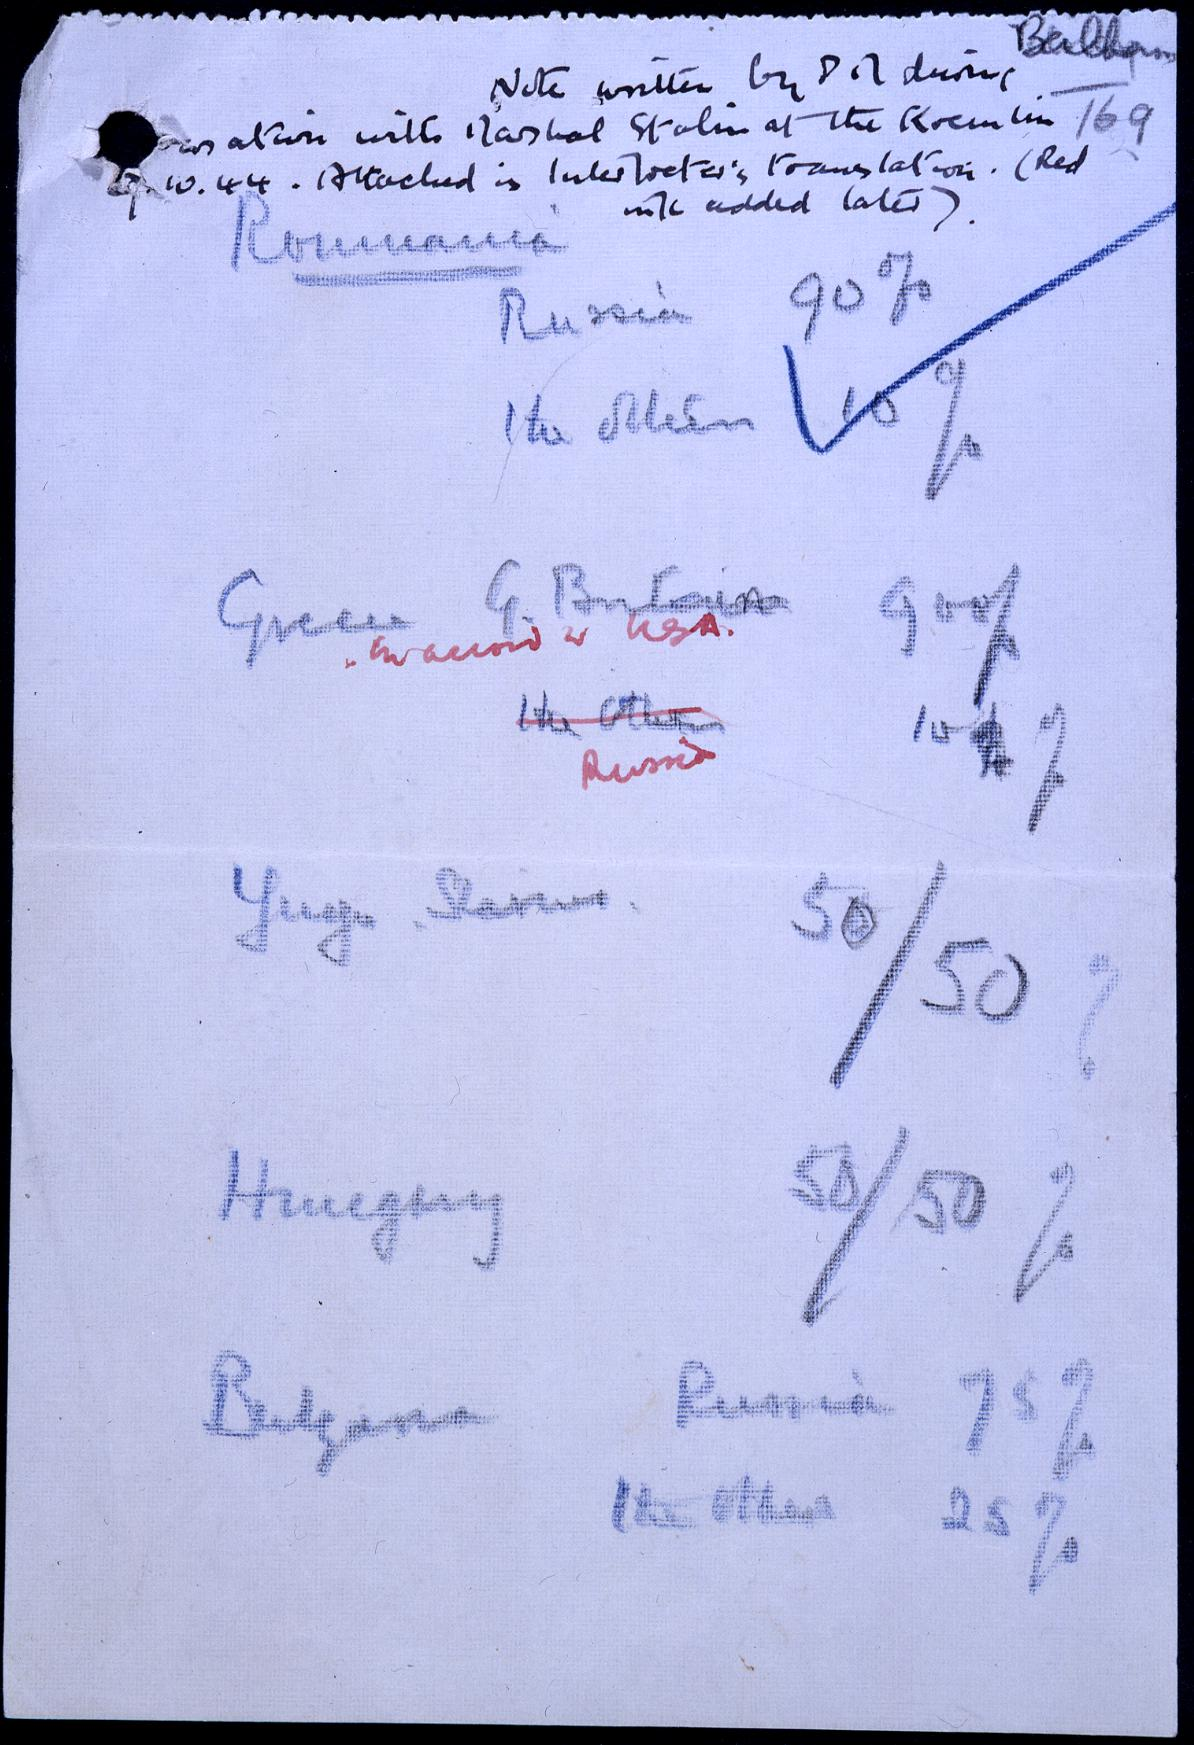 Churchill's percentages agreement with Stalin